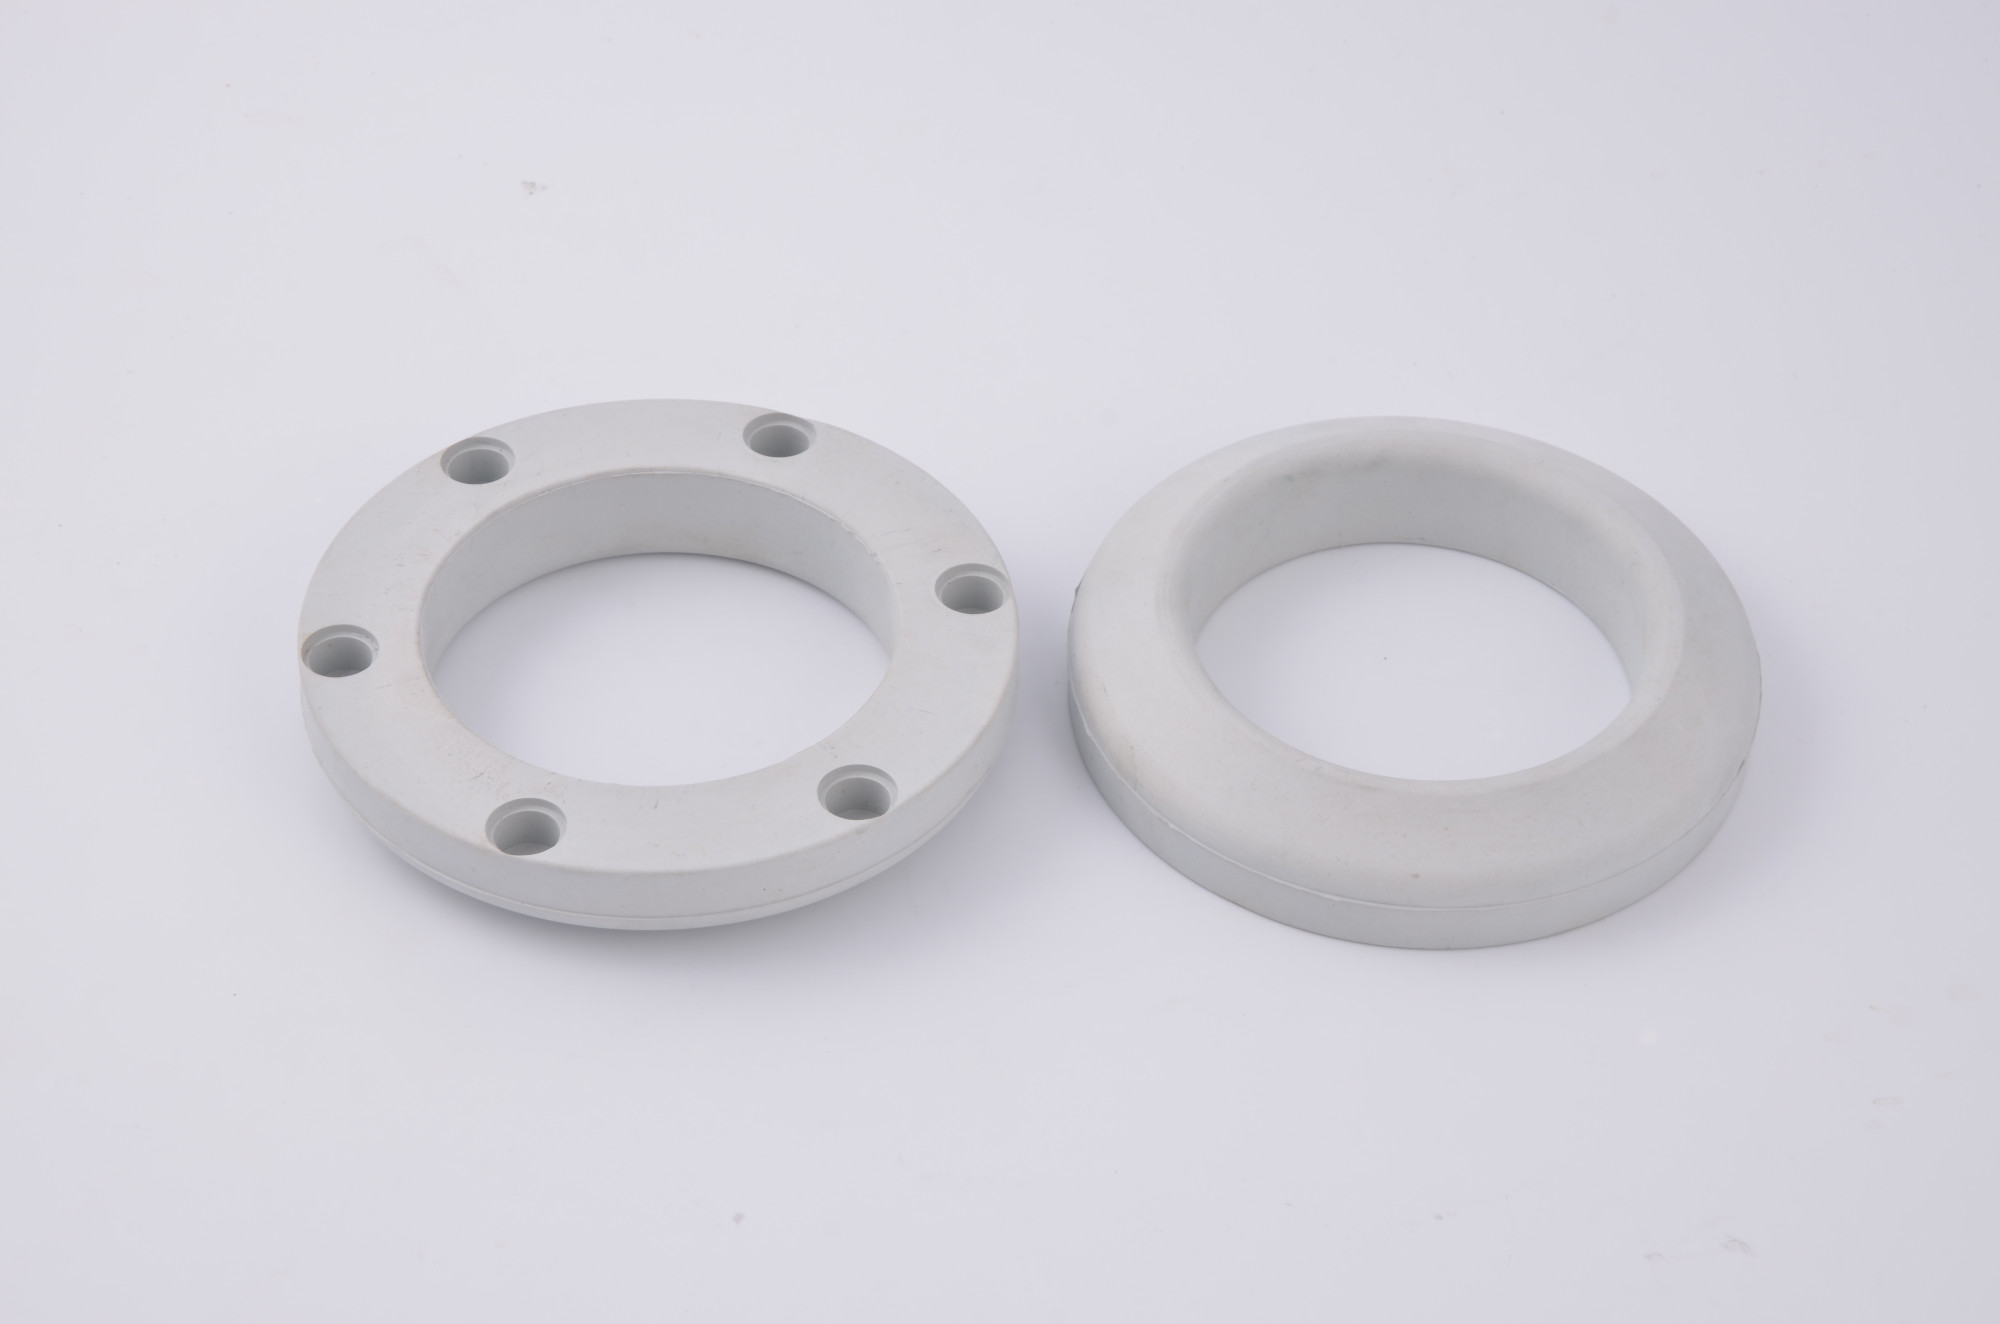 Rubber and plastic parts Manufacturers, Rubber and plastic parts Factory, Rubber and plastic parts